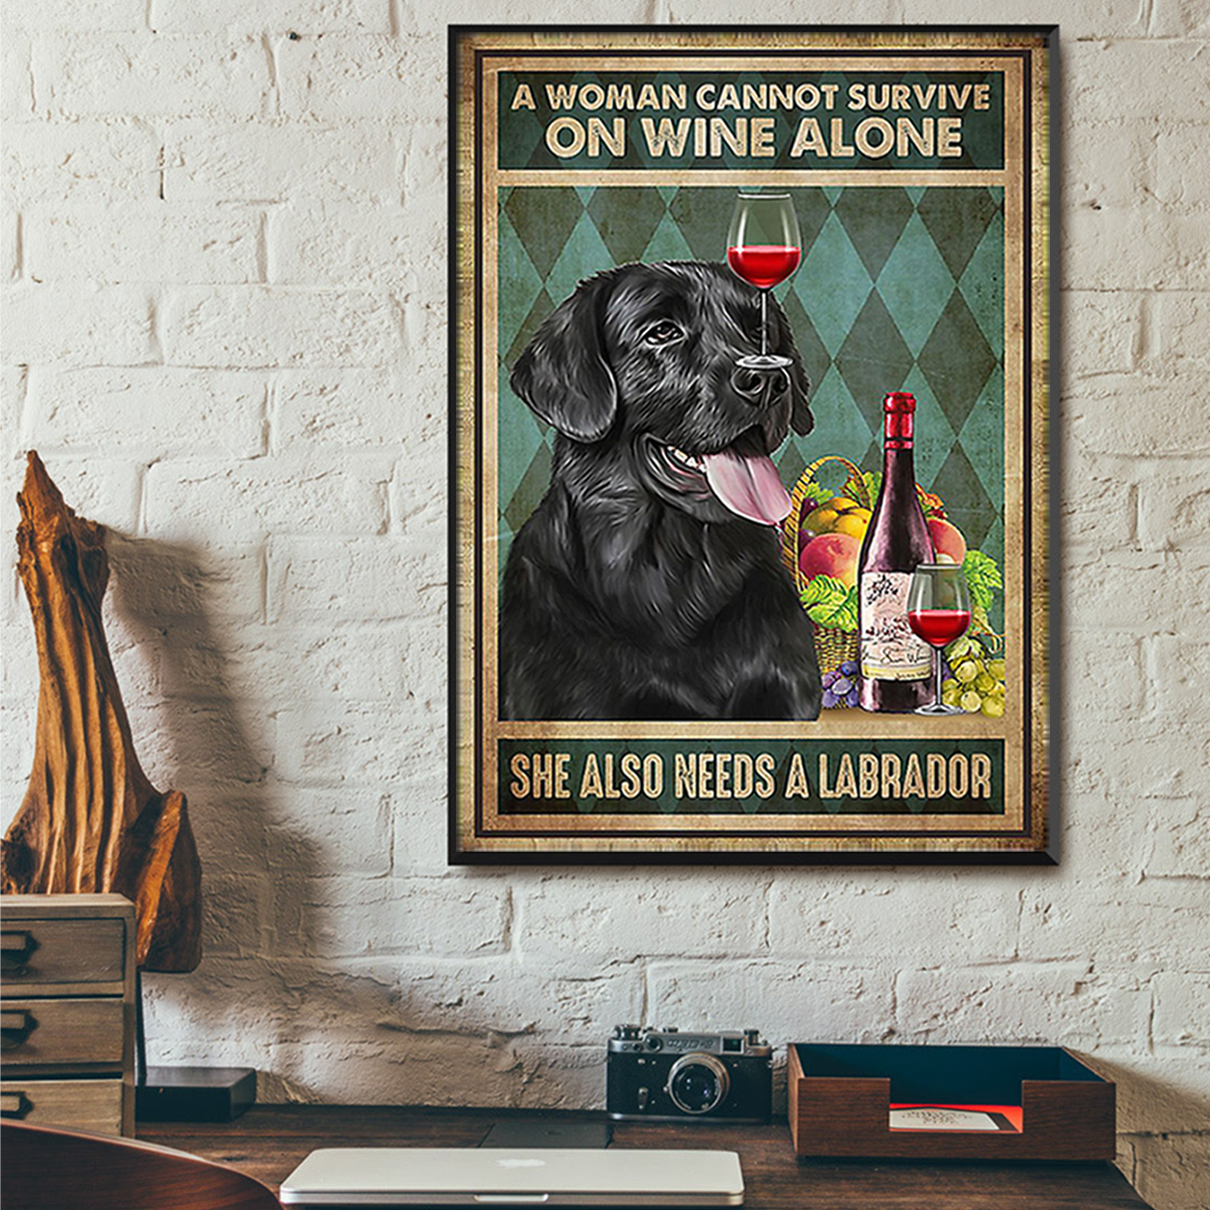 A woman cannot survive on wine alone she also needs a labrador poster A3